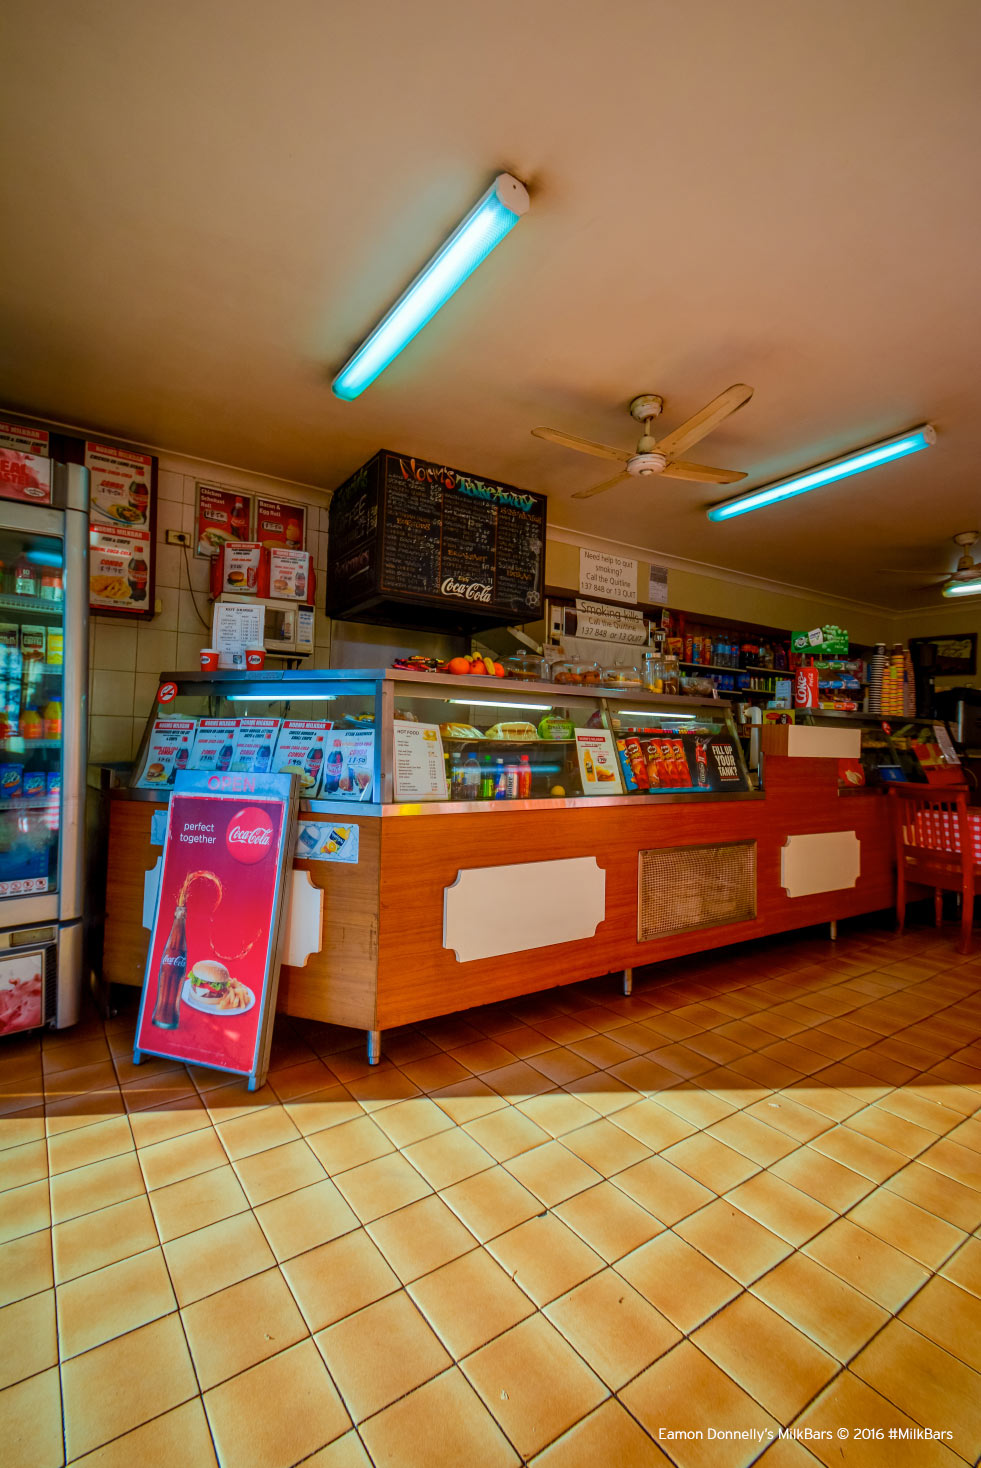 Norm's-Milk-Bar-2-Eamon-Donnelly's-Milk-Bars-Book-Project-(c)-2001-2016.jpg